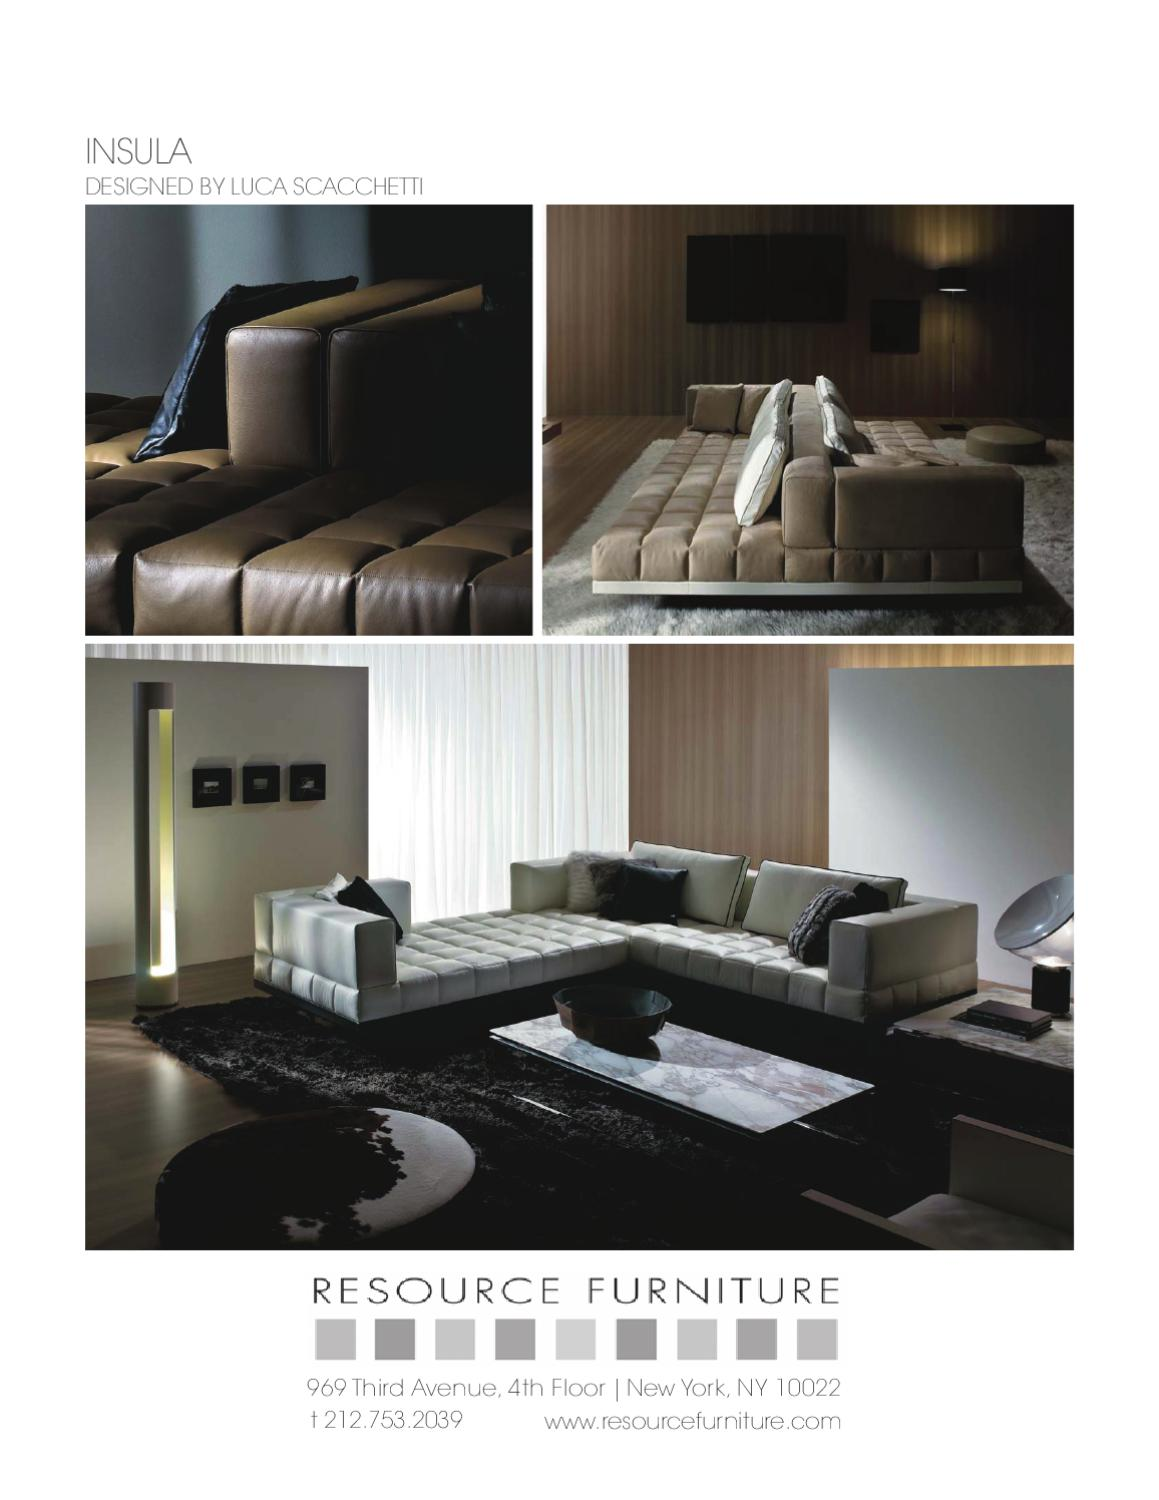 Http://www.resourcefurniture.com/sites/default/files/product/217/marianiinsulatearsheet_pdf_10123  By Resource Furniture   Issuu